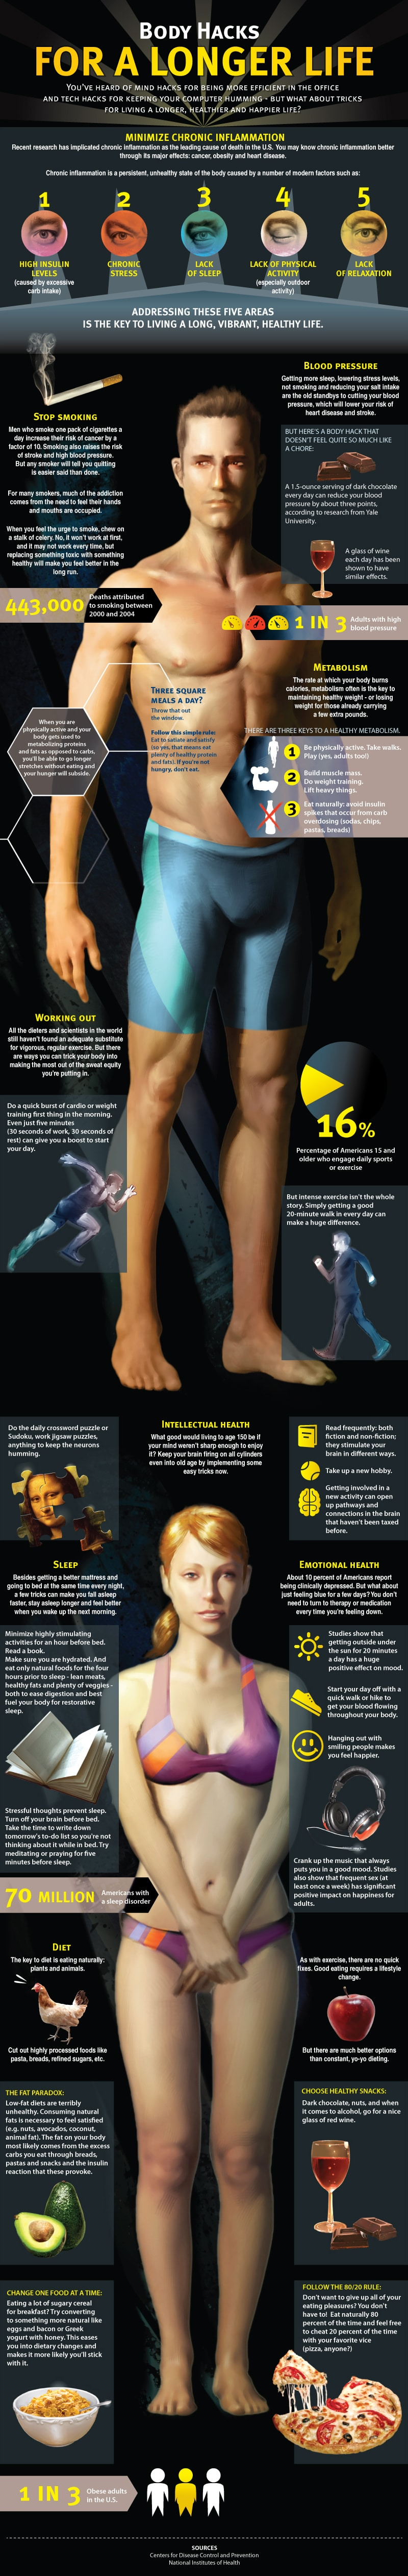 the-body-hacks-health-infographic